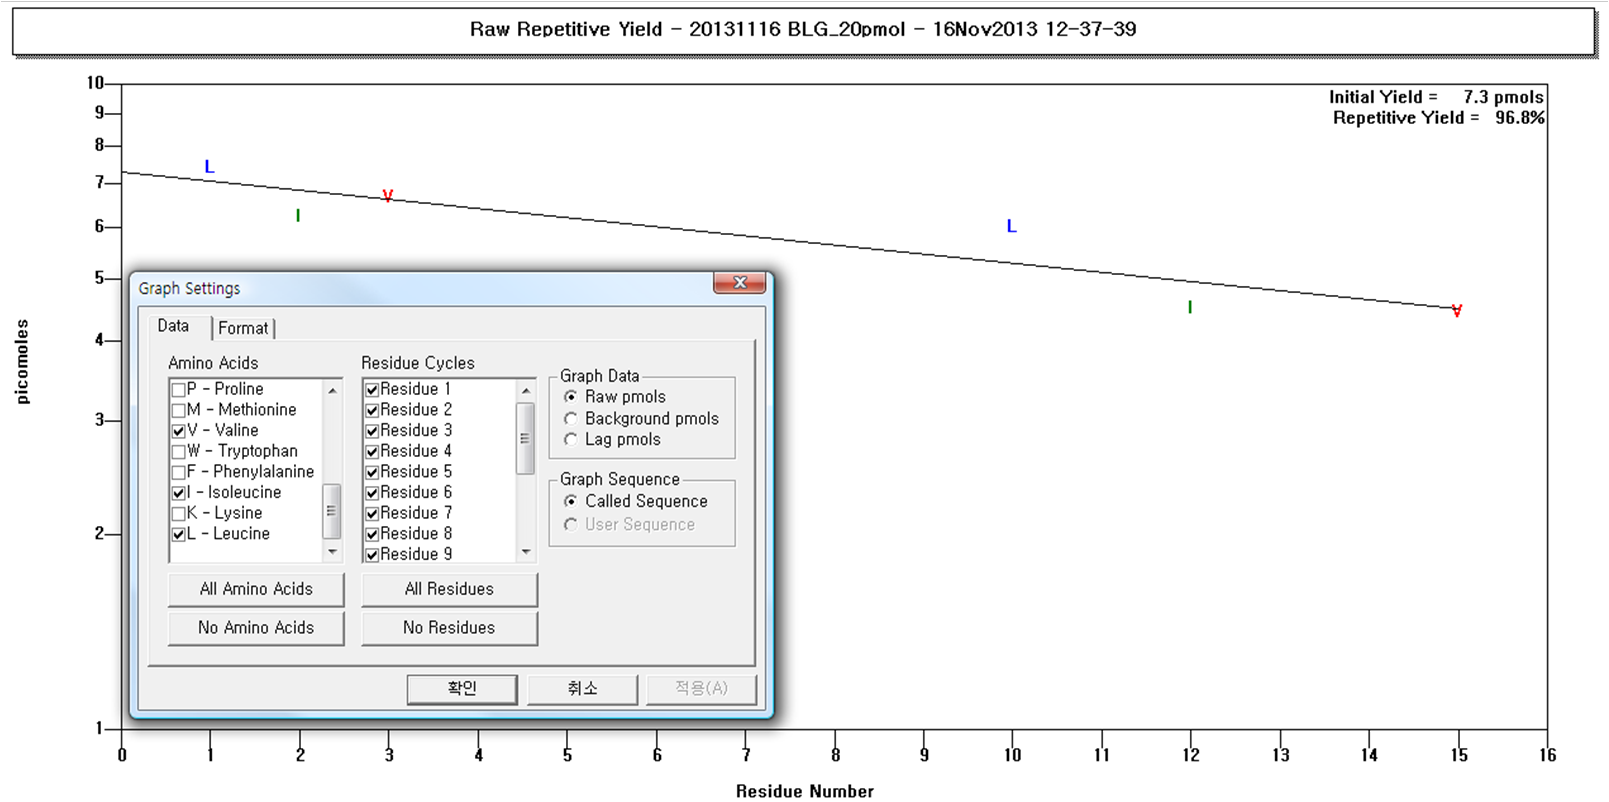 BLG - repetitive yield_201311.png